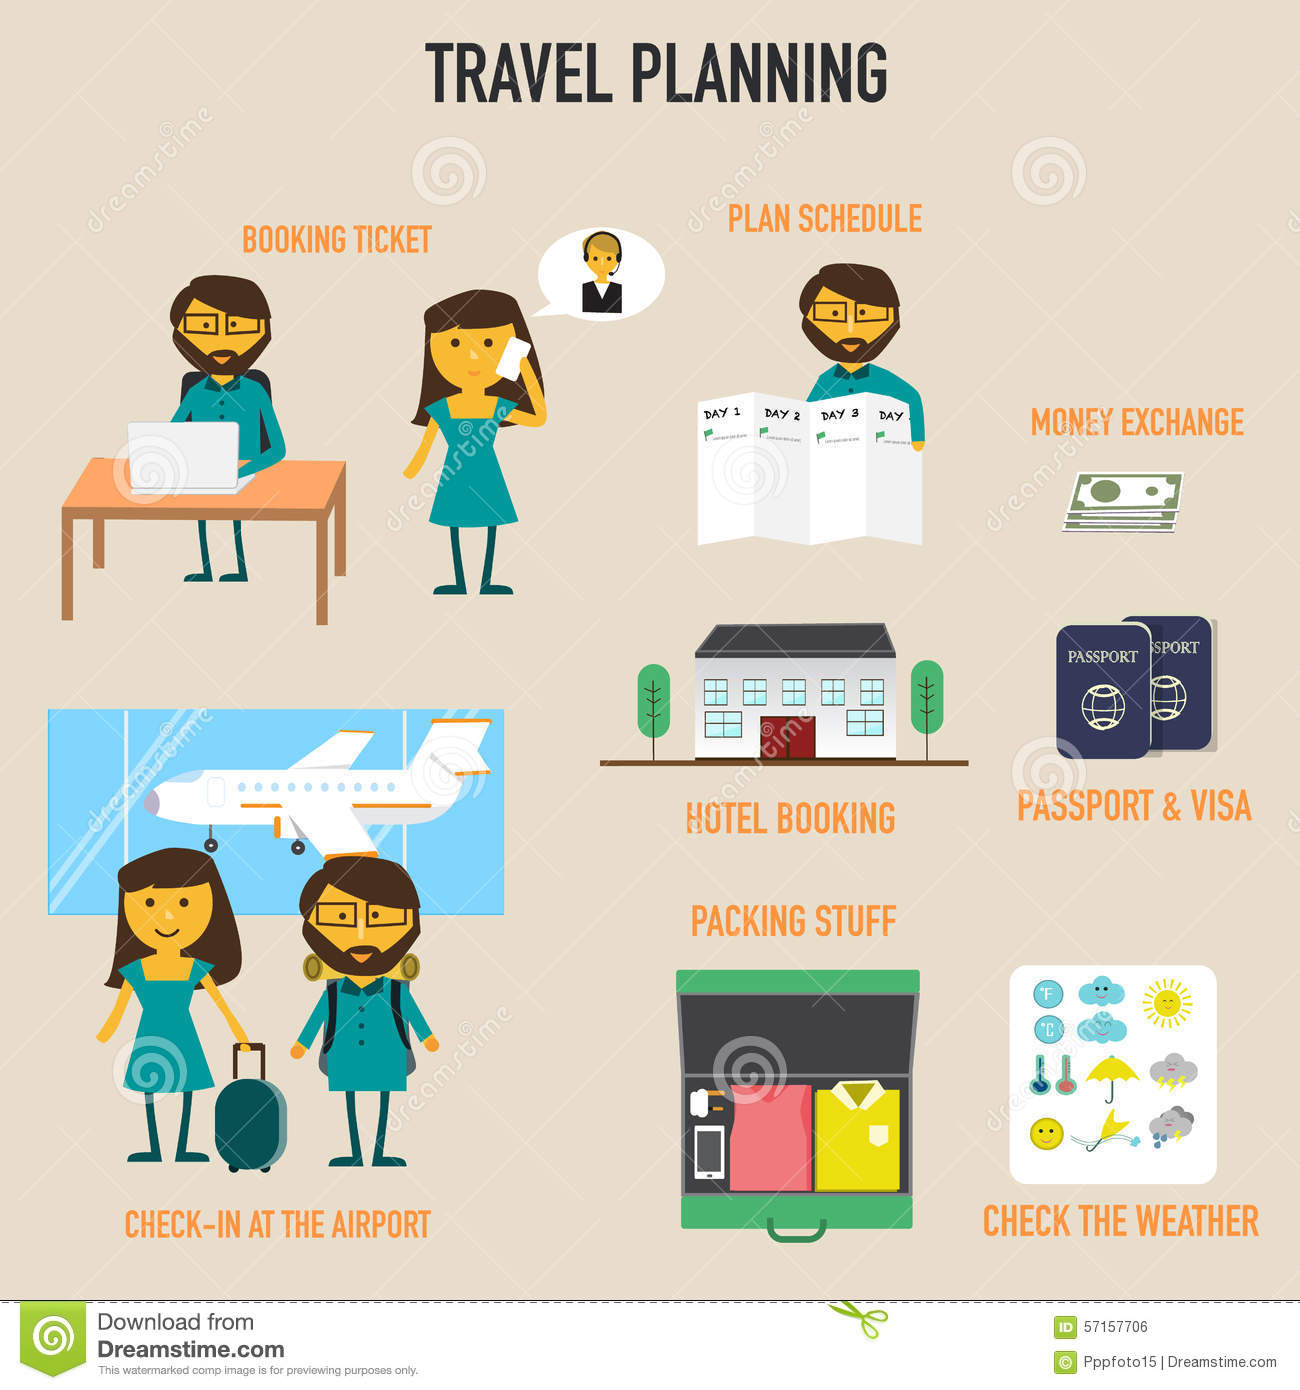 Travel Planning With Booking Ticket Schedule Plan Hotel